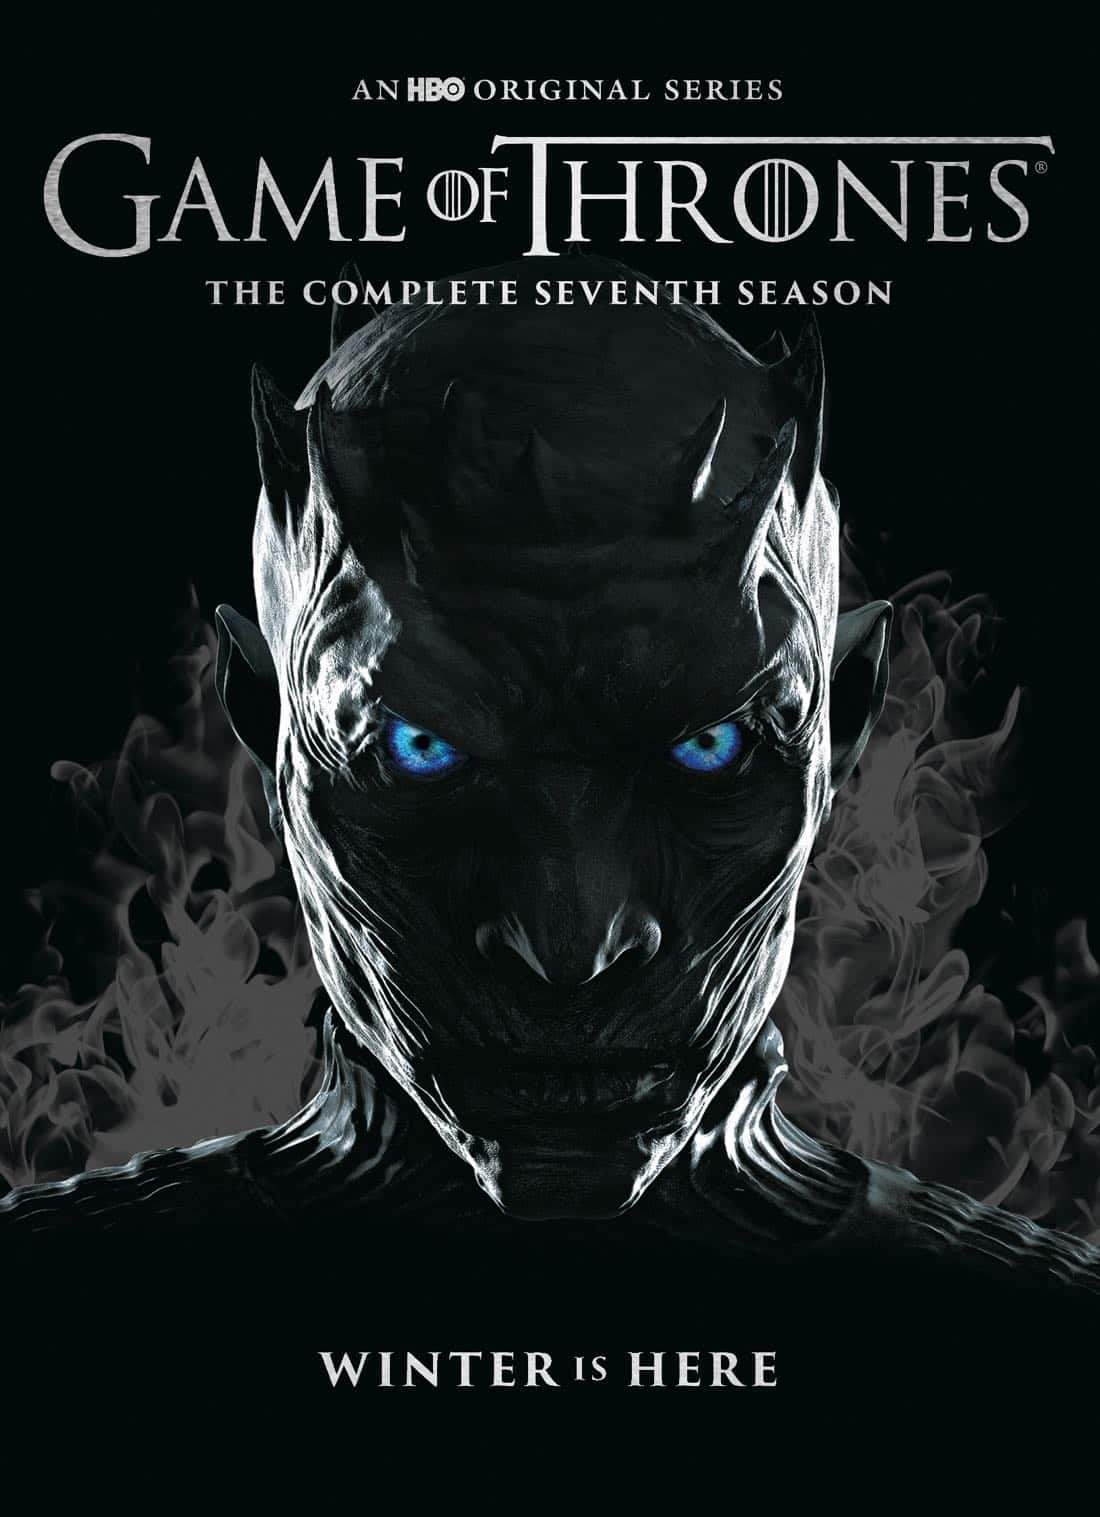 Game of Thrones Season 7 DVD